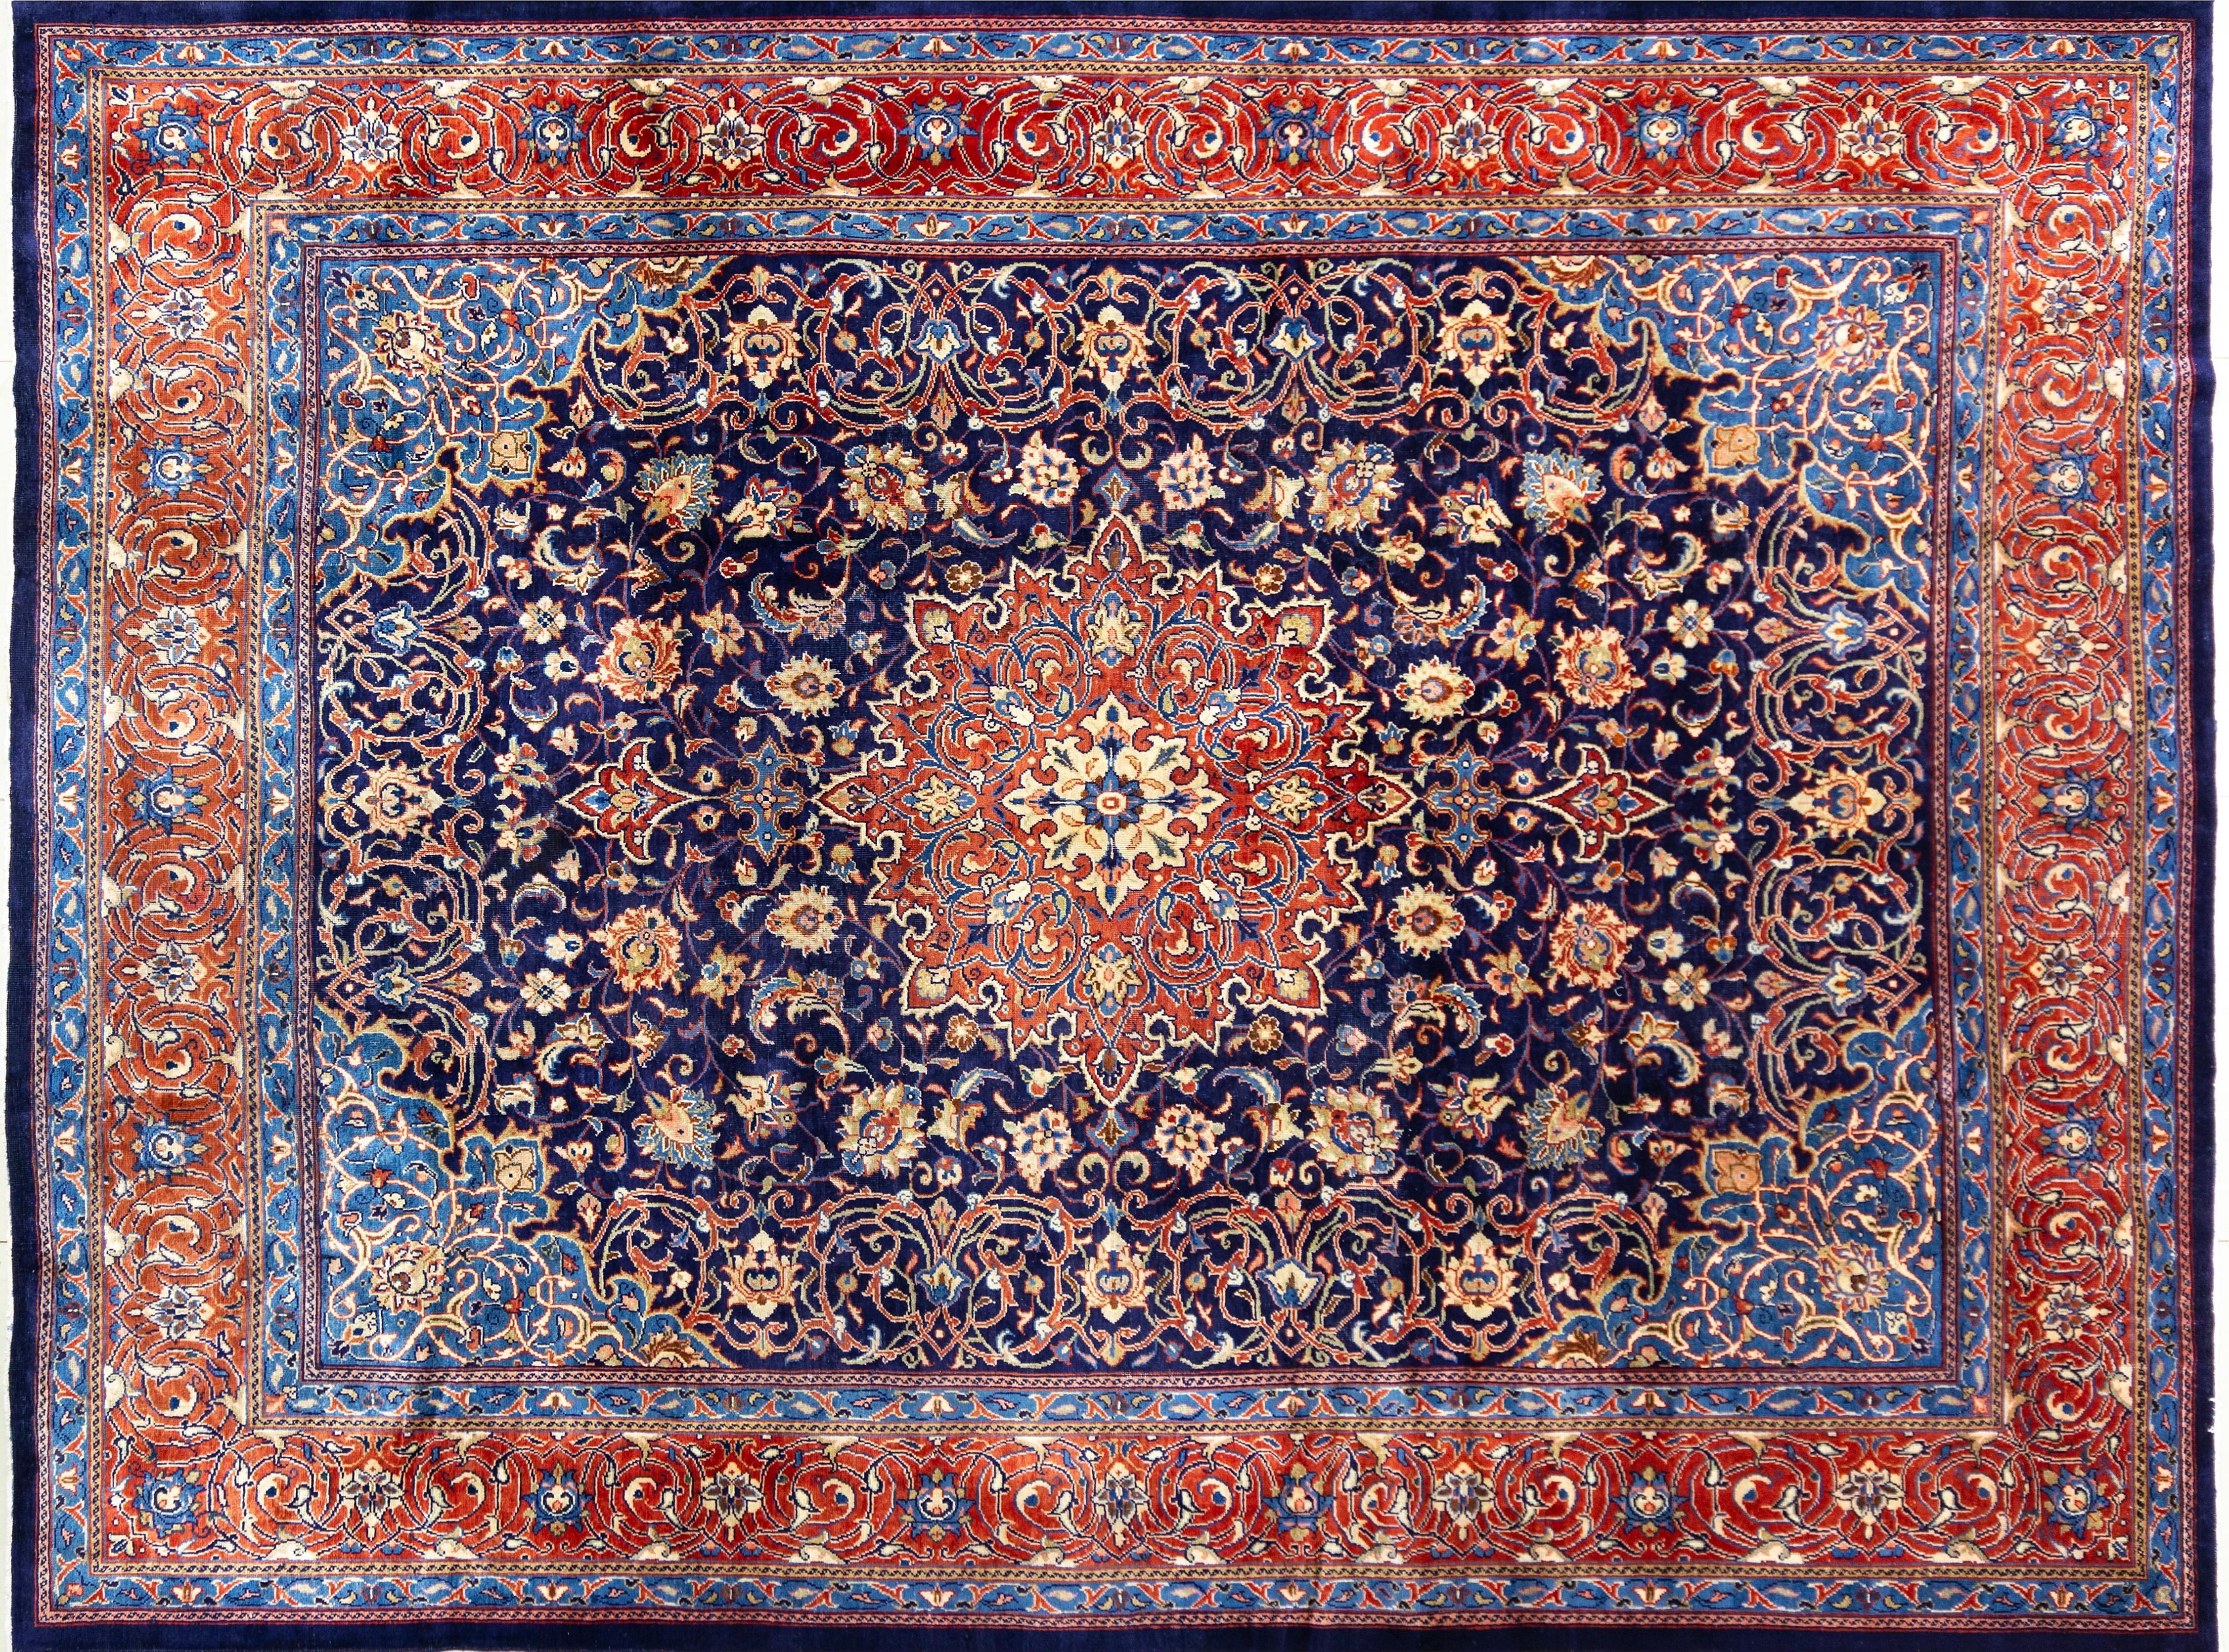 A Persian Hand Knotted Sarough Carpet, 400 x 300